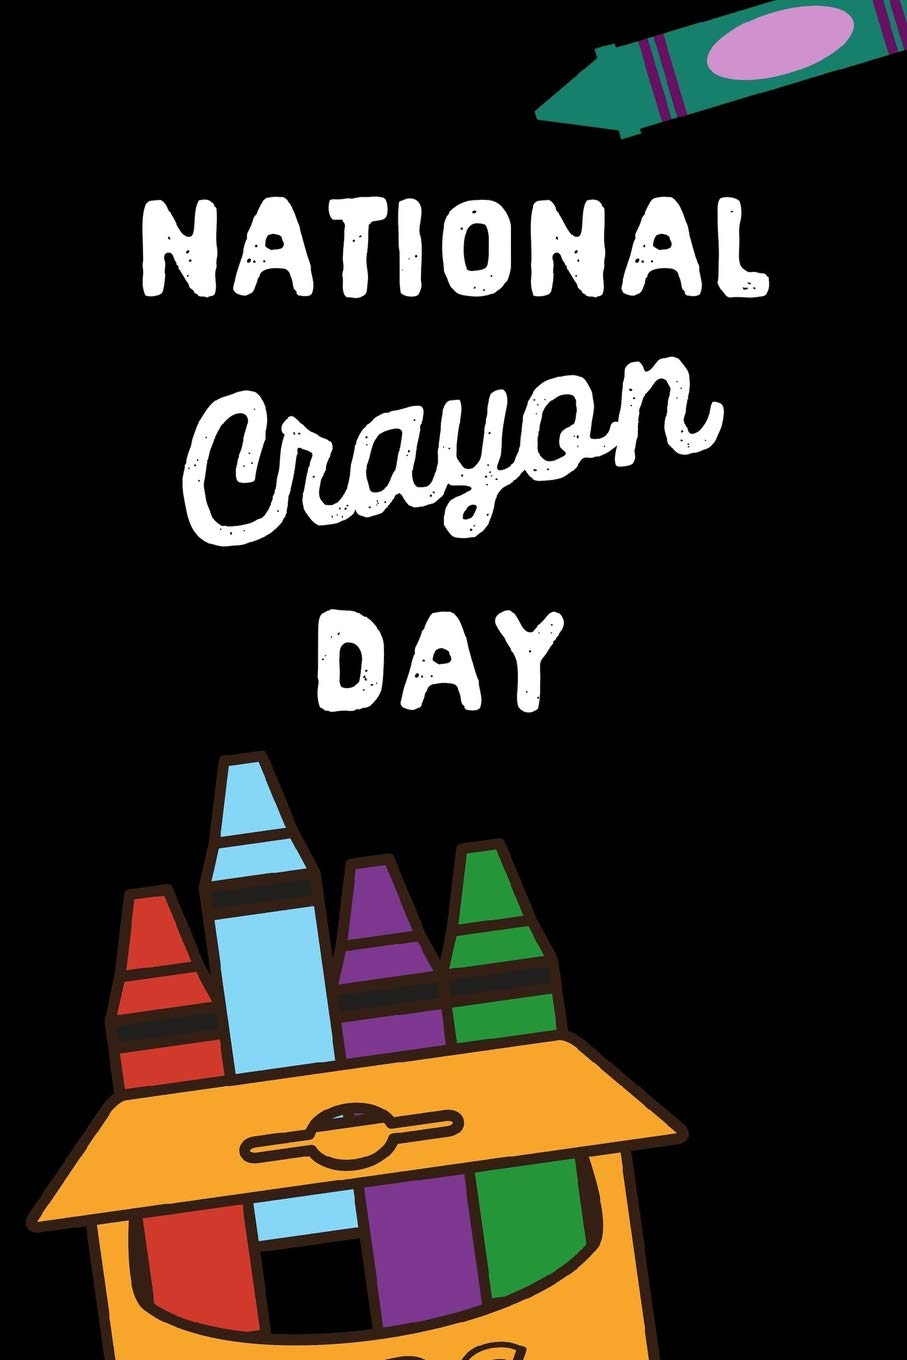 Amazon Com National Crayon Day March 31st Gift This Is A Blank Lined Journal That Makes A Perfect Crayon Day Gift For Students Or Moms It S 6x9 With 120 Pages A Convenient Size